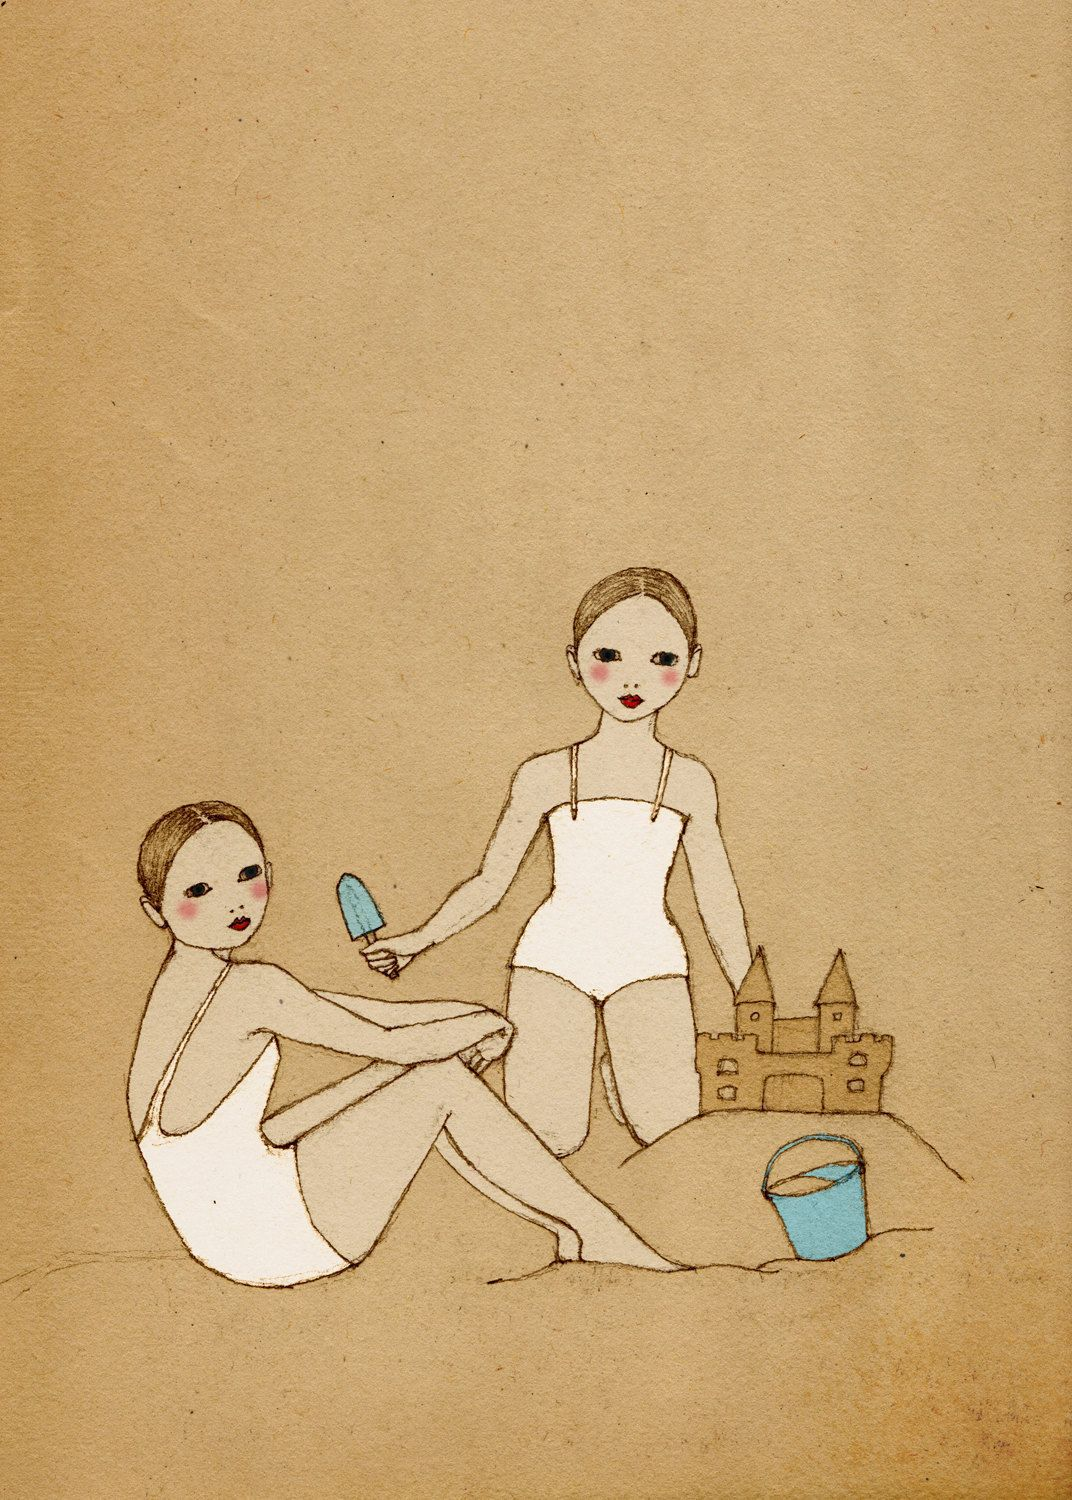 Girls building a Sand Castle Deluxe Edition Print of original drawing.  via Etsy.